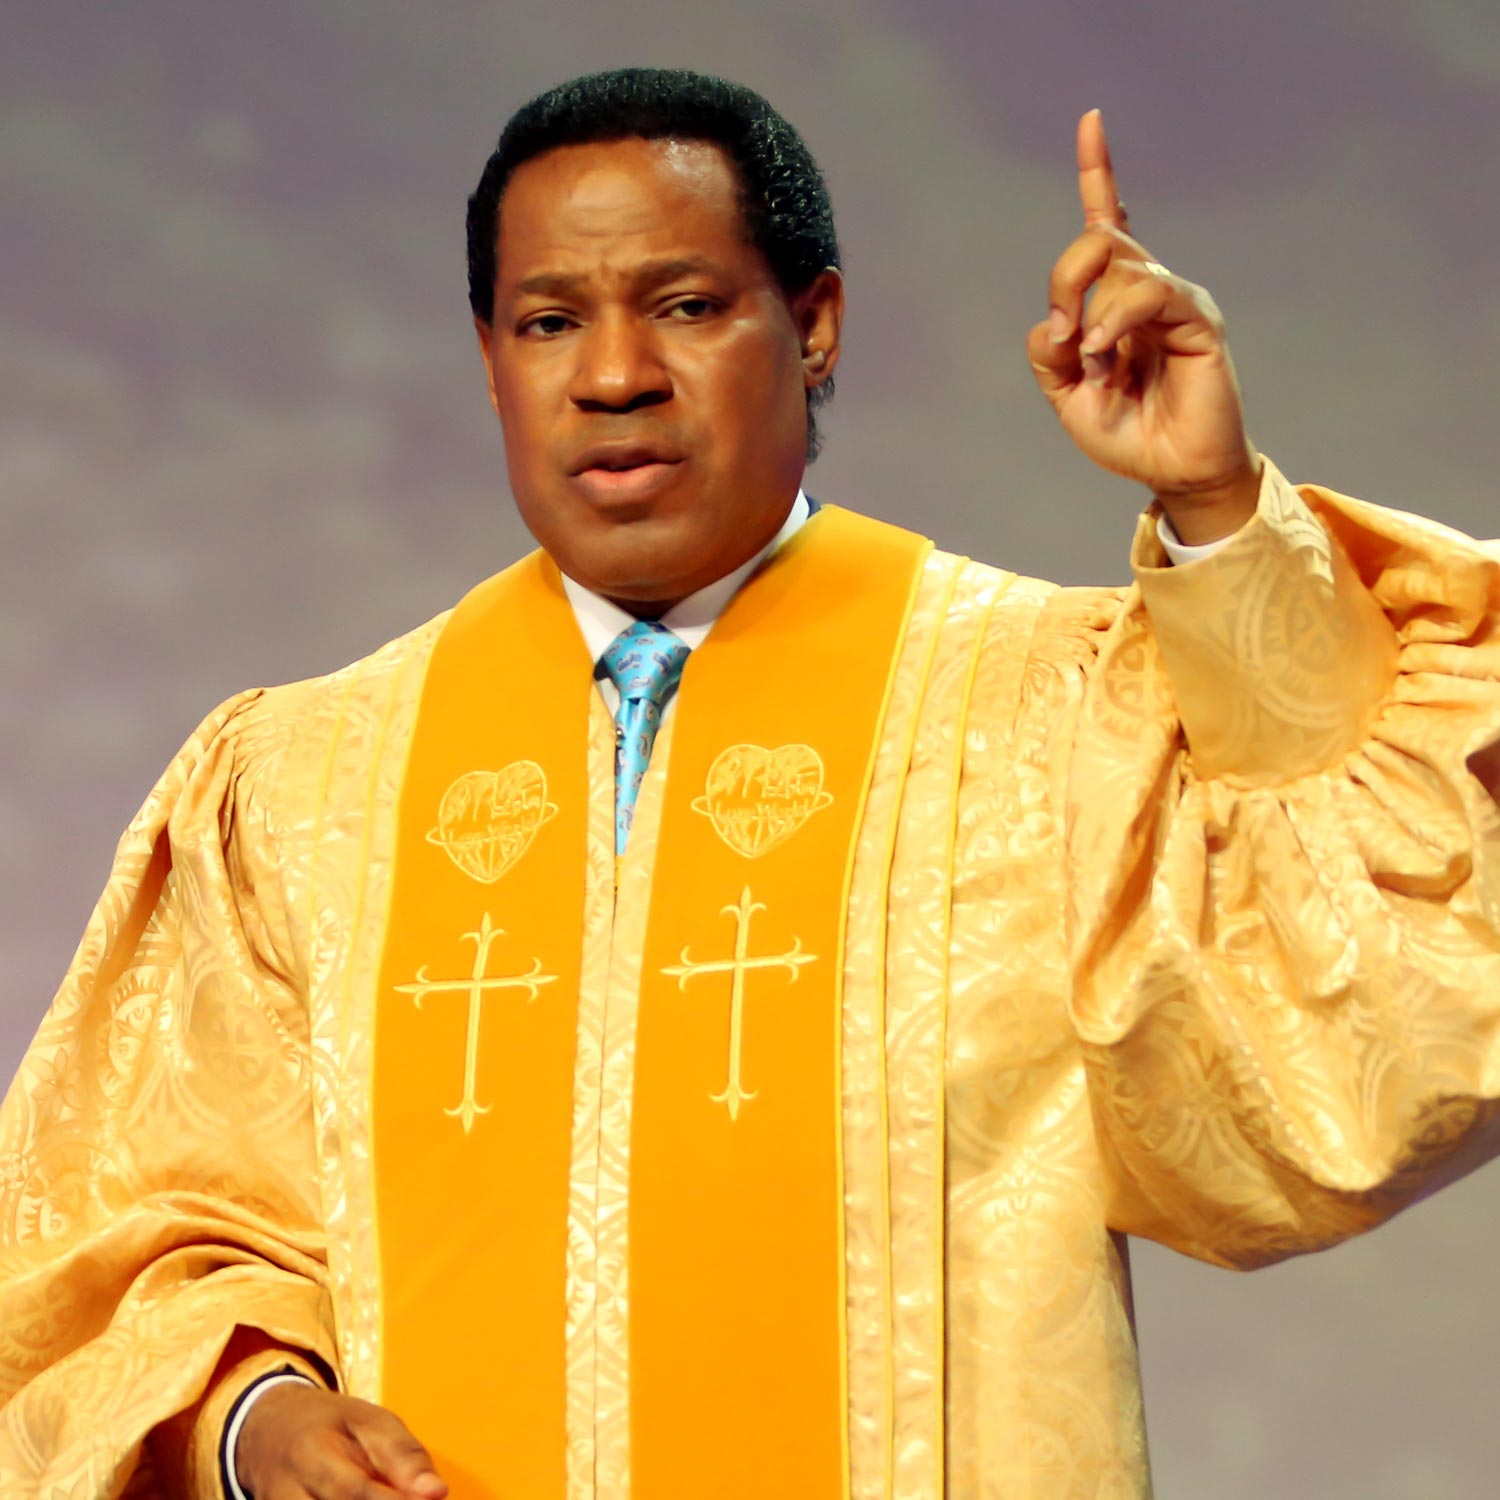 Rhapsody Of Realities 21 April 2021 By Pastor Chris Oyakhilome (Christ Embassy) – Know The Scriptures By The Spirit